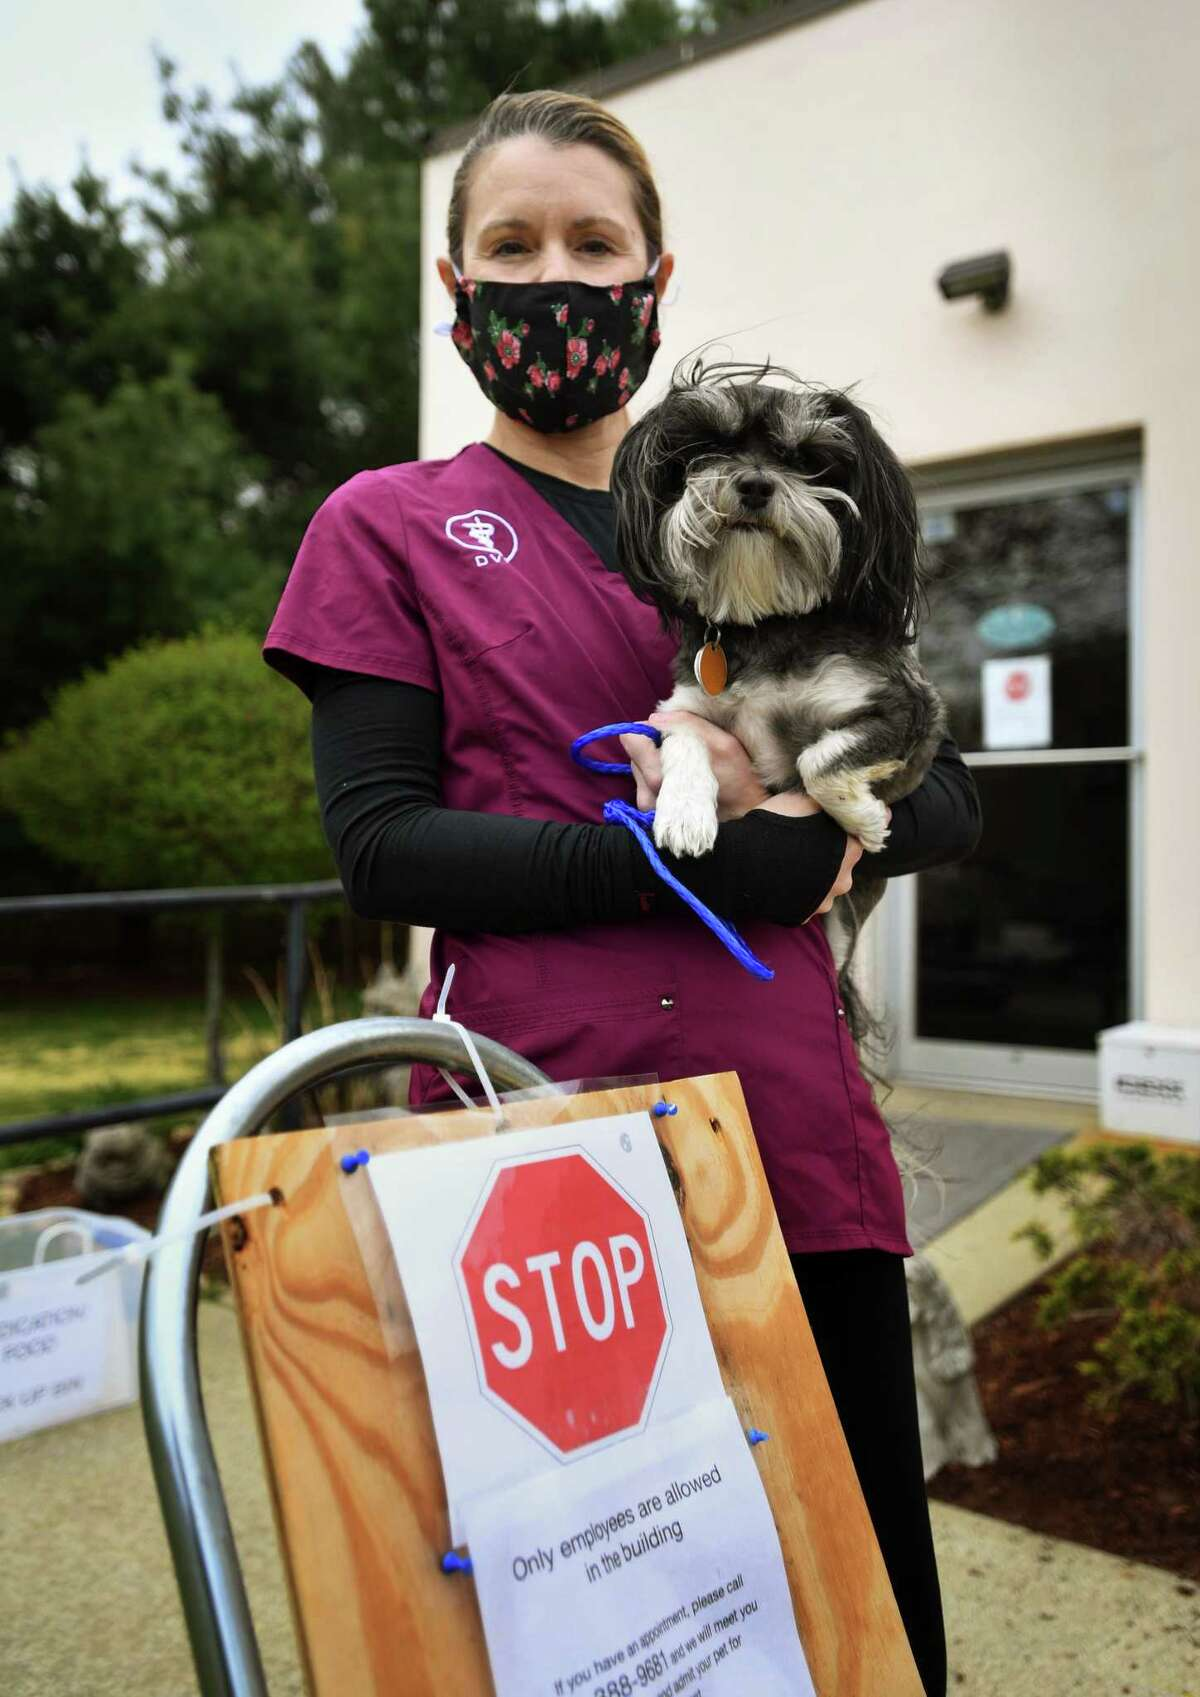 Veterinarian Suzanne Magruder, DVM, owner of Saybrook Veterinary Hospital, with her dog Dexter in Old Saybrook, Conn. on Wednesday, May 6, 2020.